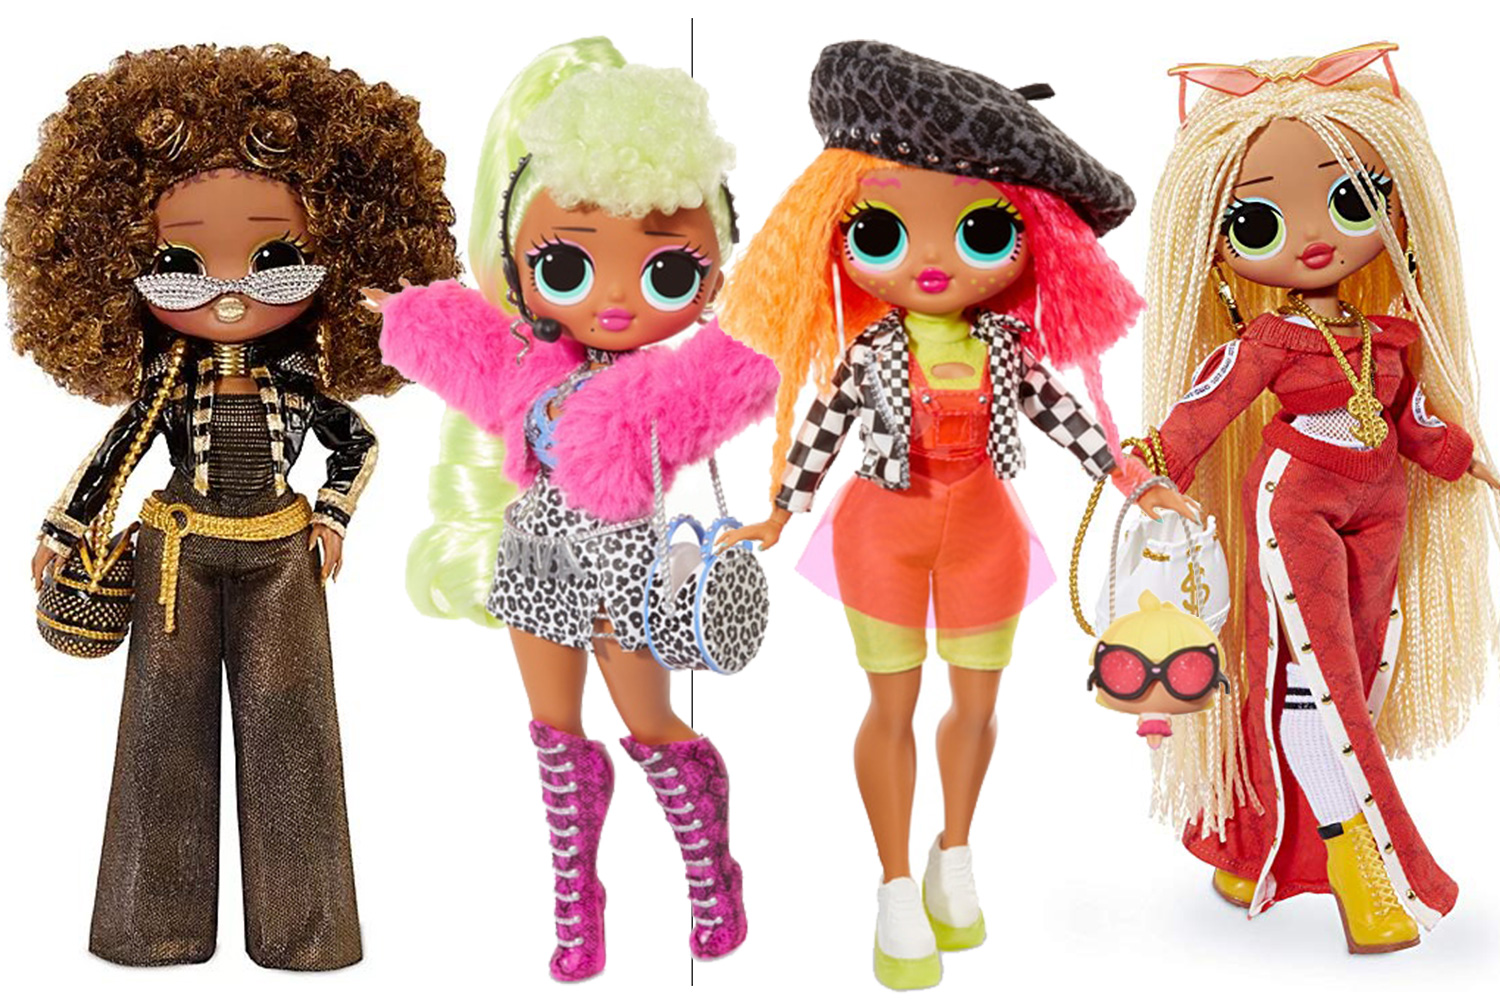 Doll Toys In Amazon Lol Surprise Launches New Fashion Dolls In Amazon Asda